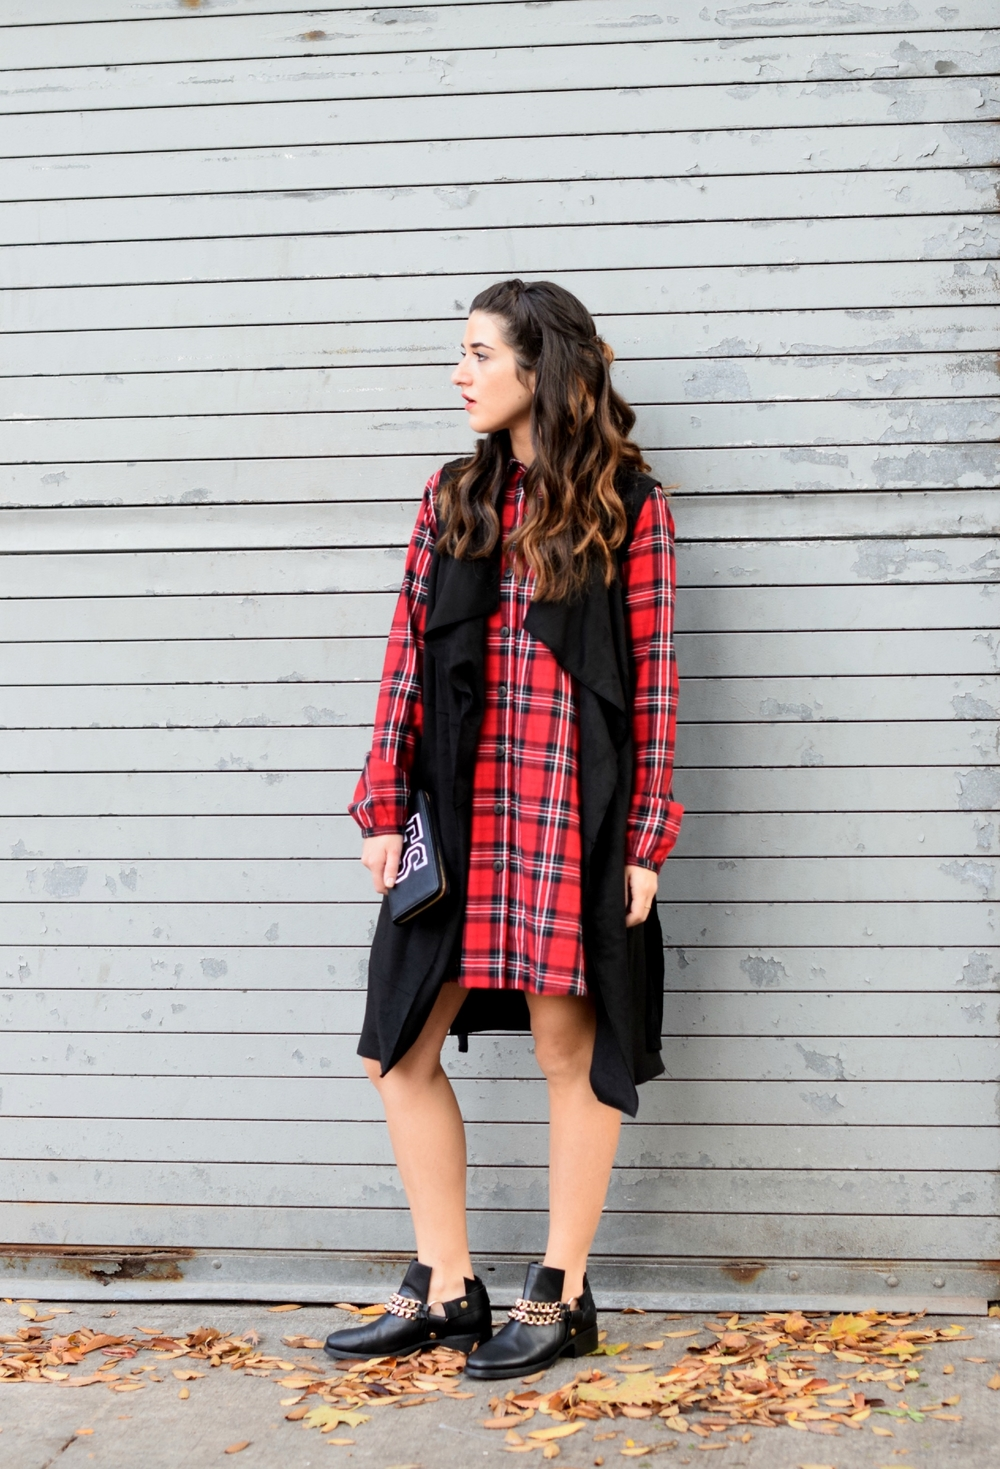 Plaid Dress Long Black Vest Louboutins & Love Fashion Blog NYC Street Style Blogger Fall Weather Season Outfit OOTD Chain Booties Zara Monogram Wallet Hair Braid Inspo Pretty Shirt Shopping Girl Women Shoes Model Leaves Photoshoot Wearing Fashionista.jpg